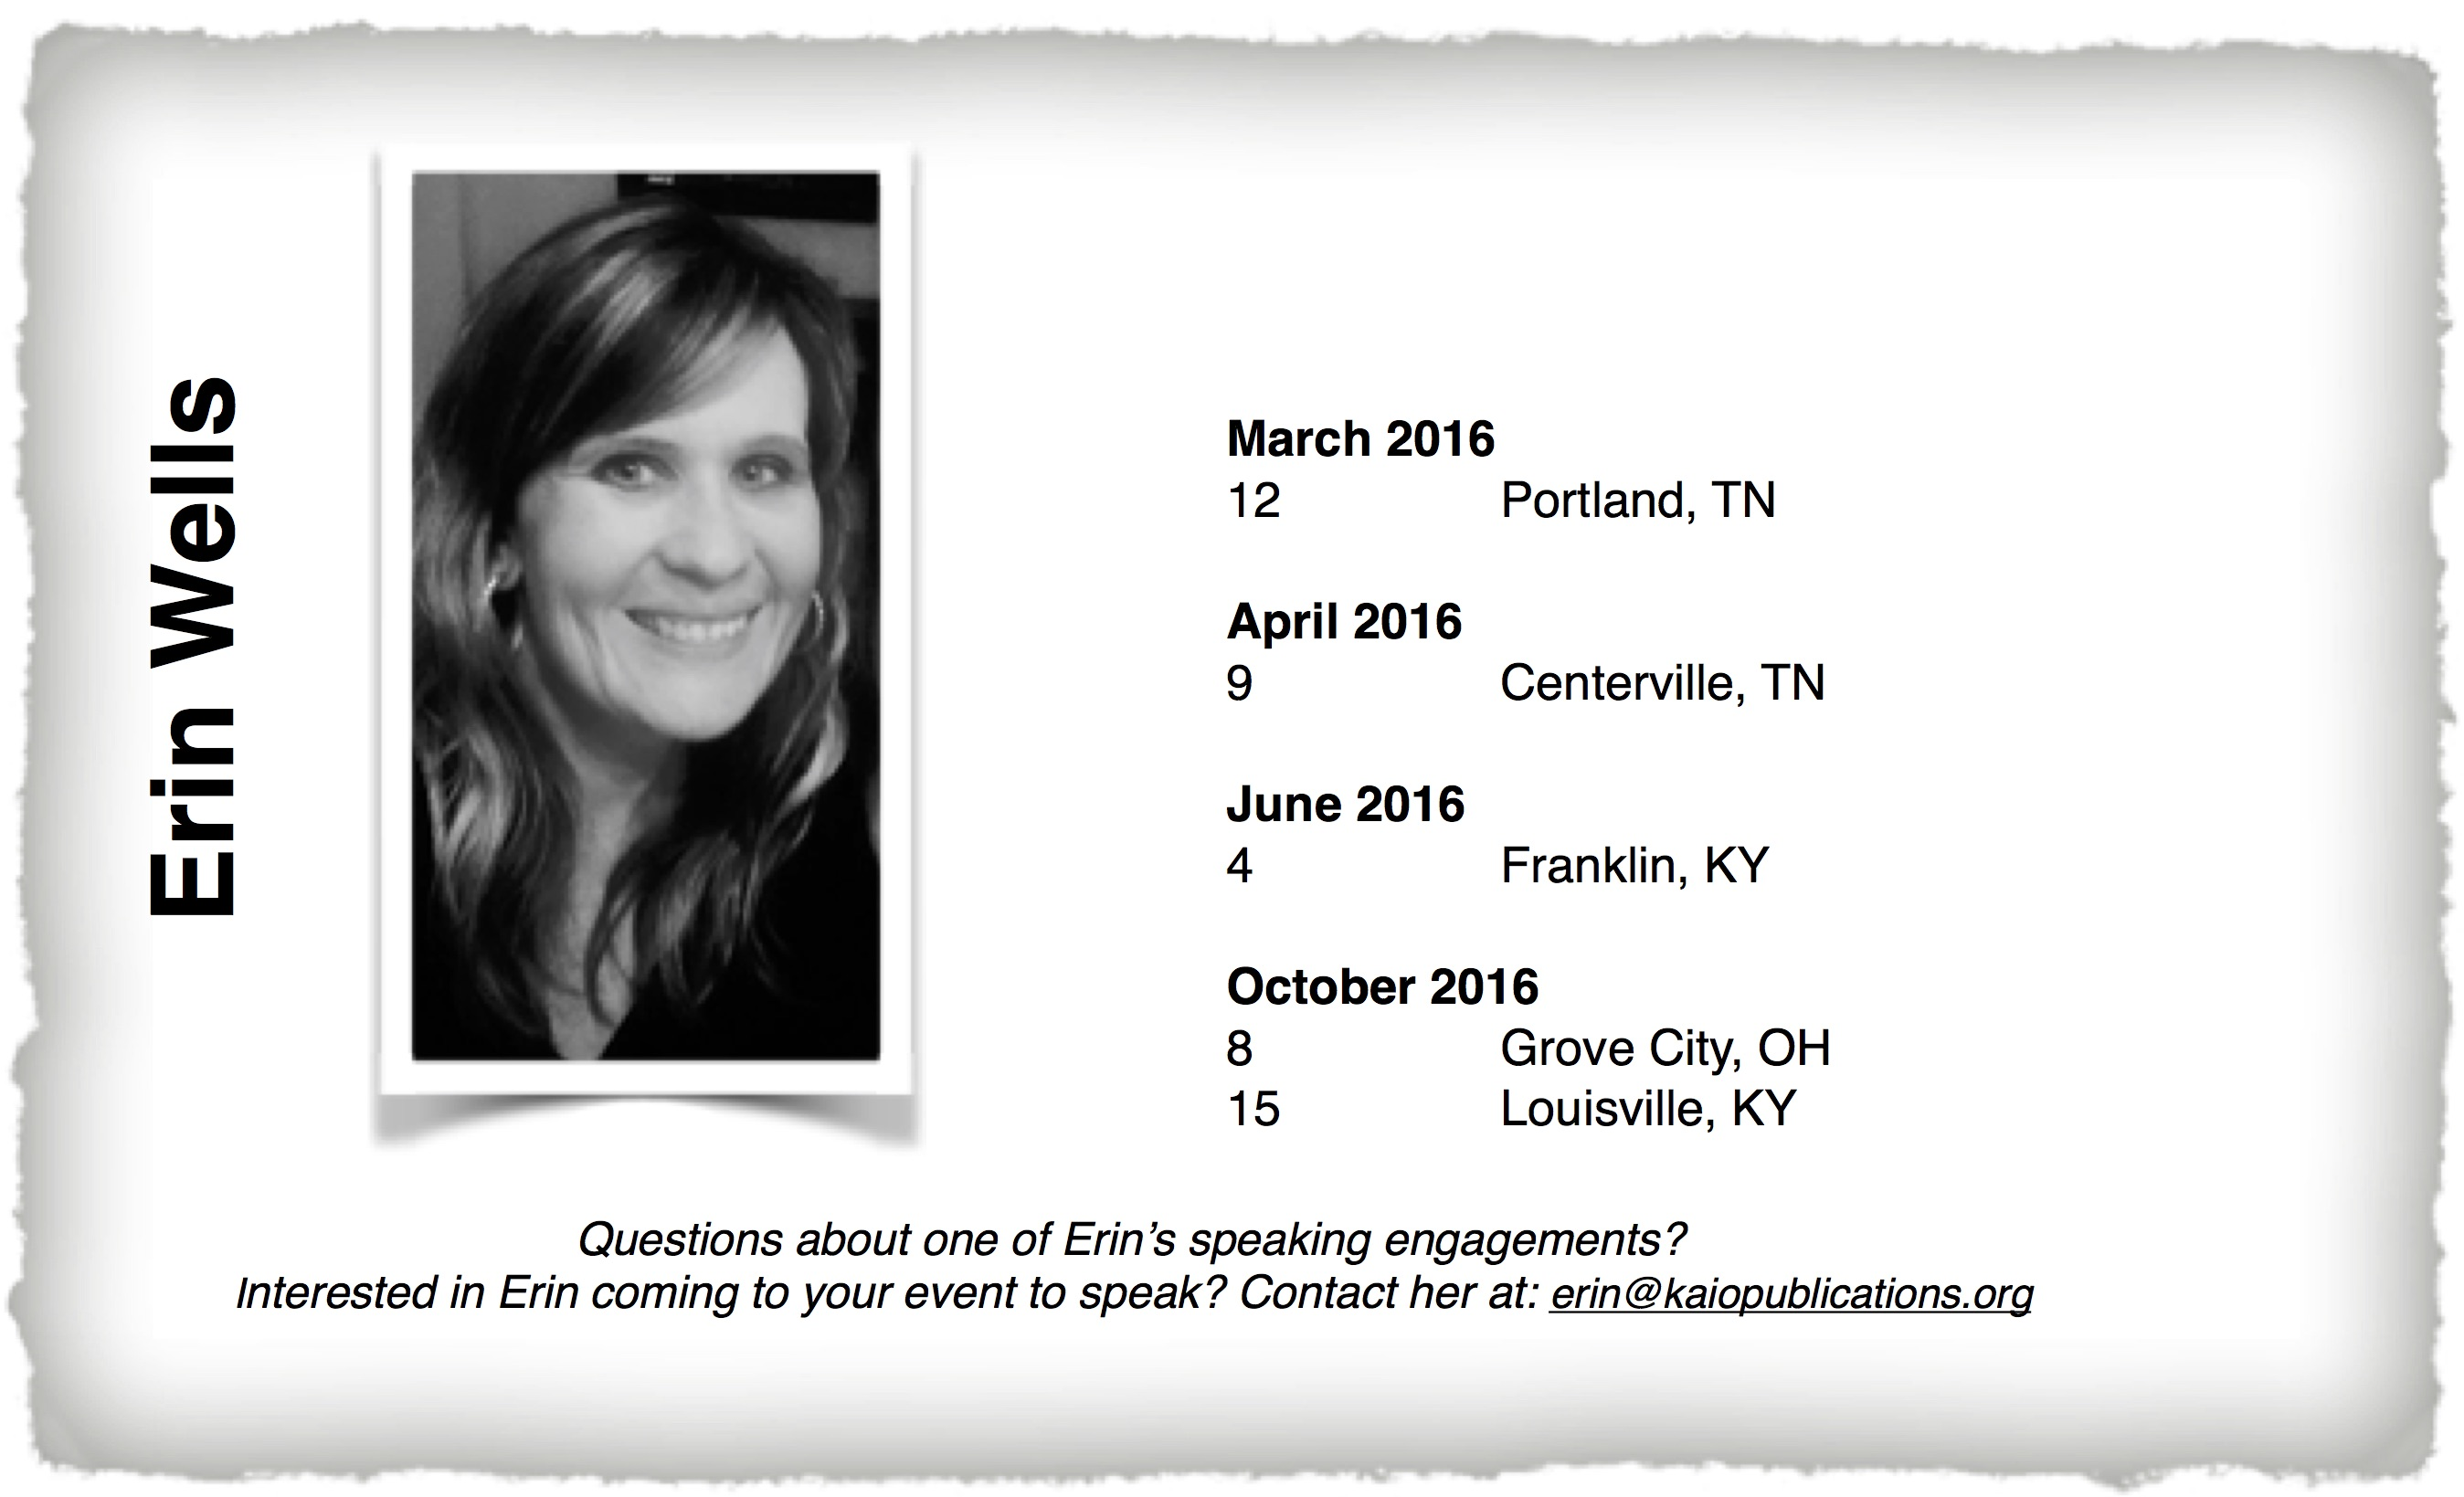 kaio-publications-speaking-schedule-for-erin-wells.jpg